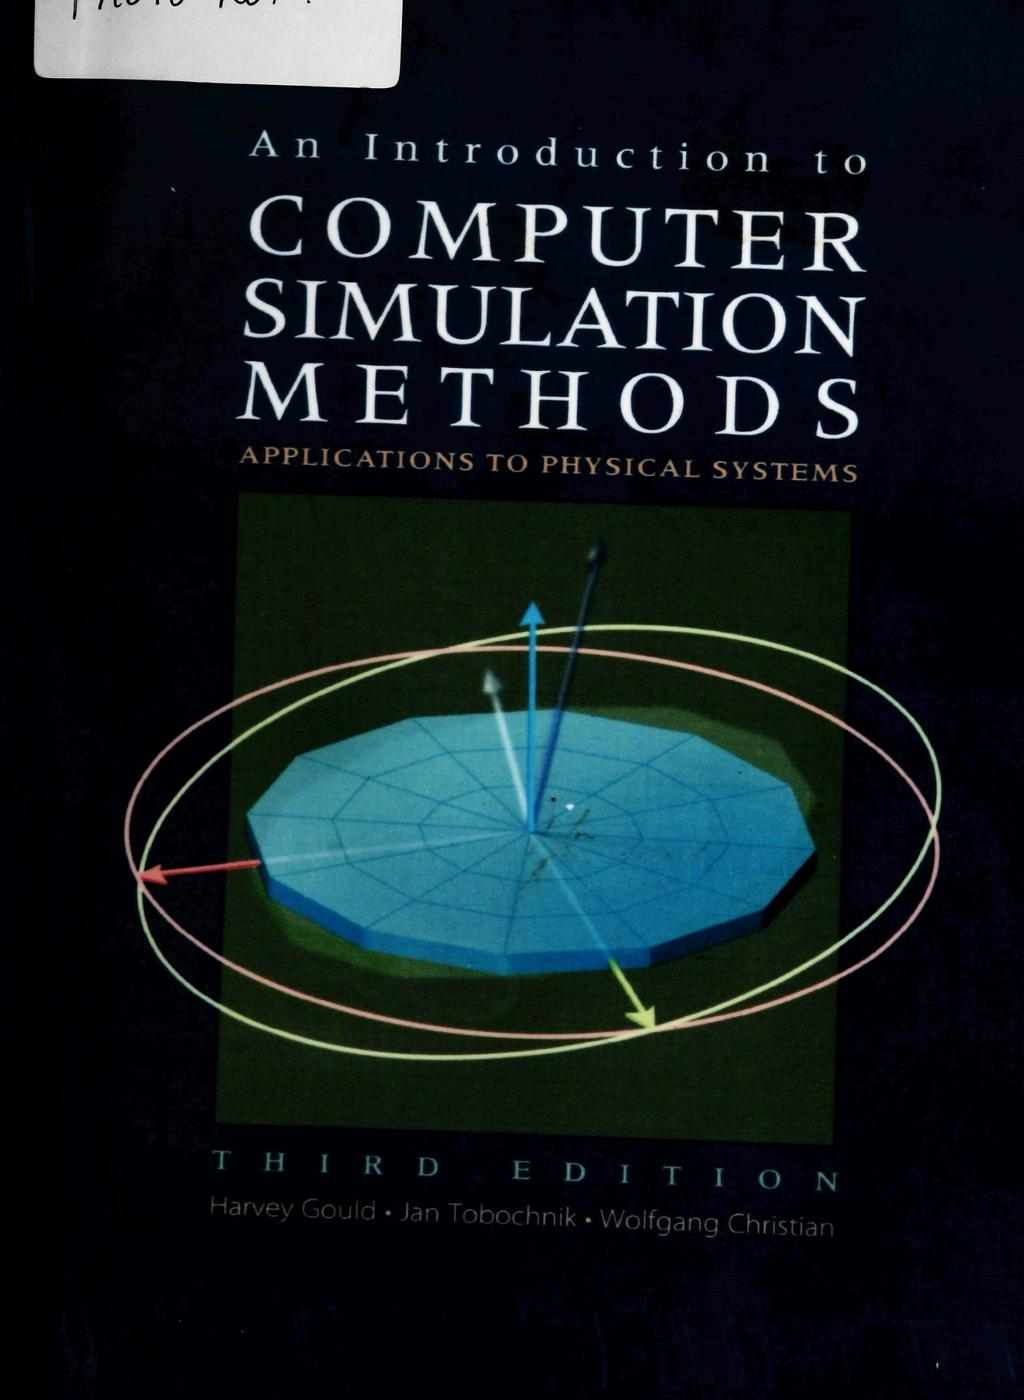 Introduction to Computer Simulation, CSiS winter term 16/17